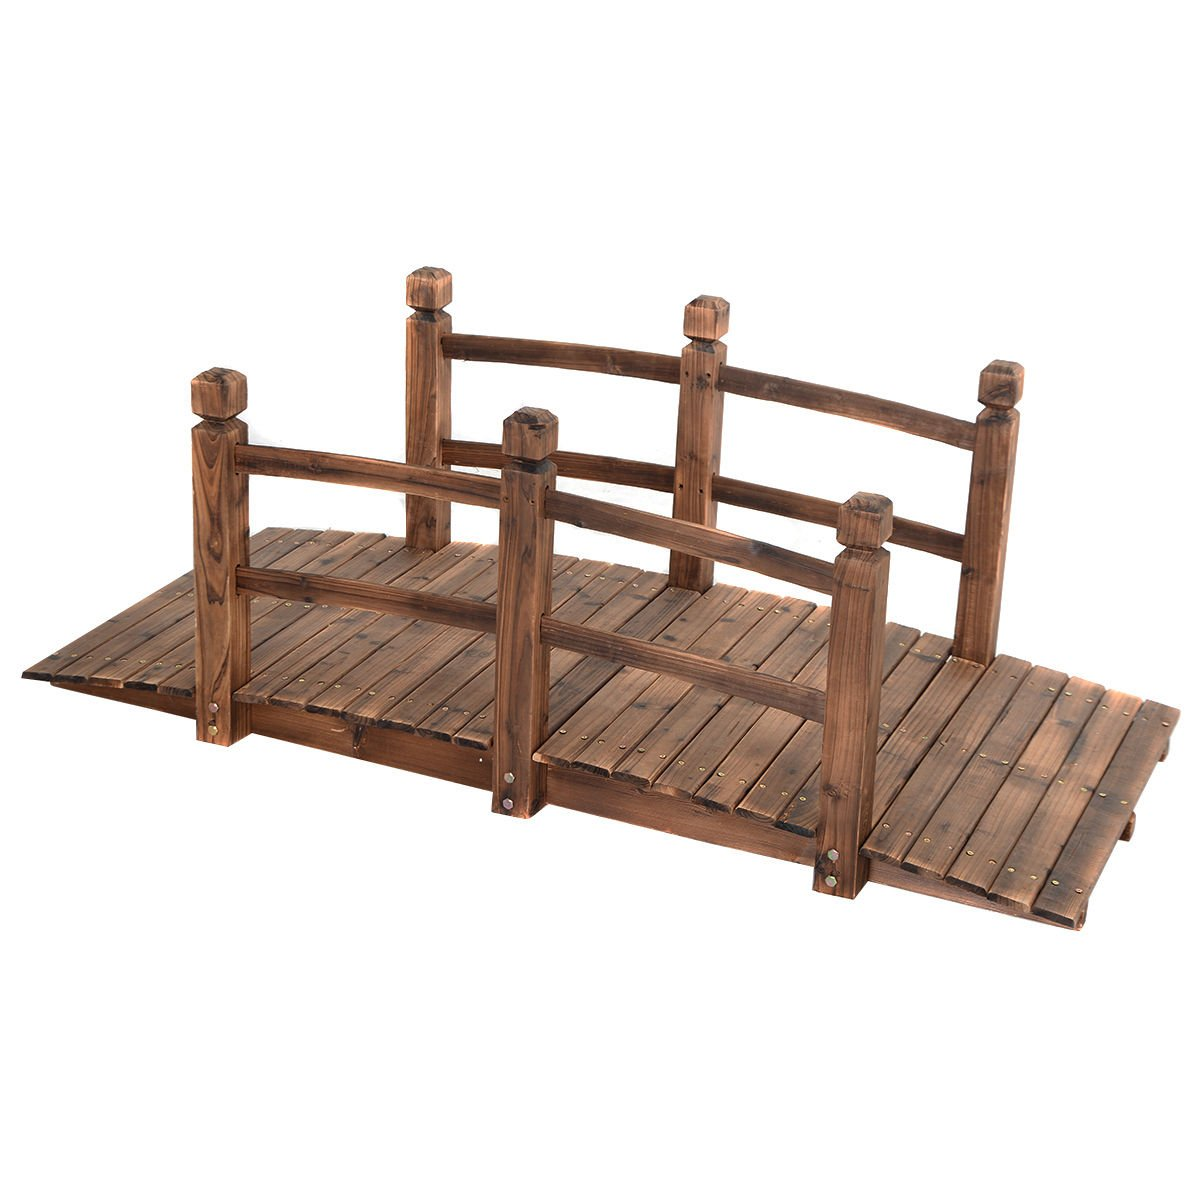 Amazoncom Garden Bridges Patio Lawn Garden